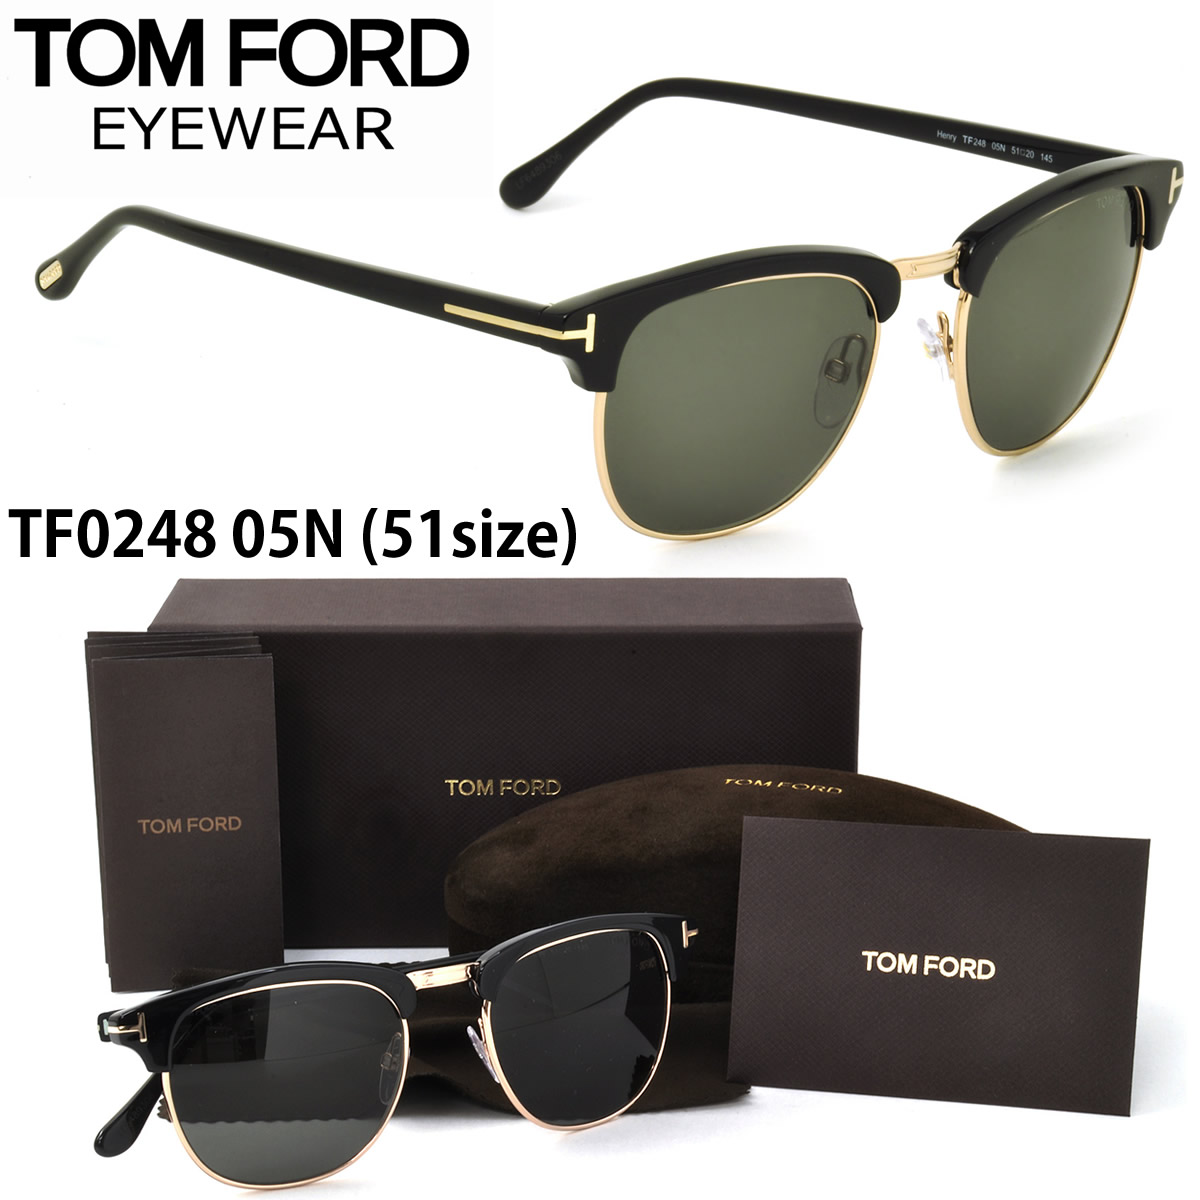 937fa18d3770a (TOM FORD) sunglasses TF0248 05N 51 size TOMFORD Henry HENRY FT0248 men gap  Dis